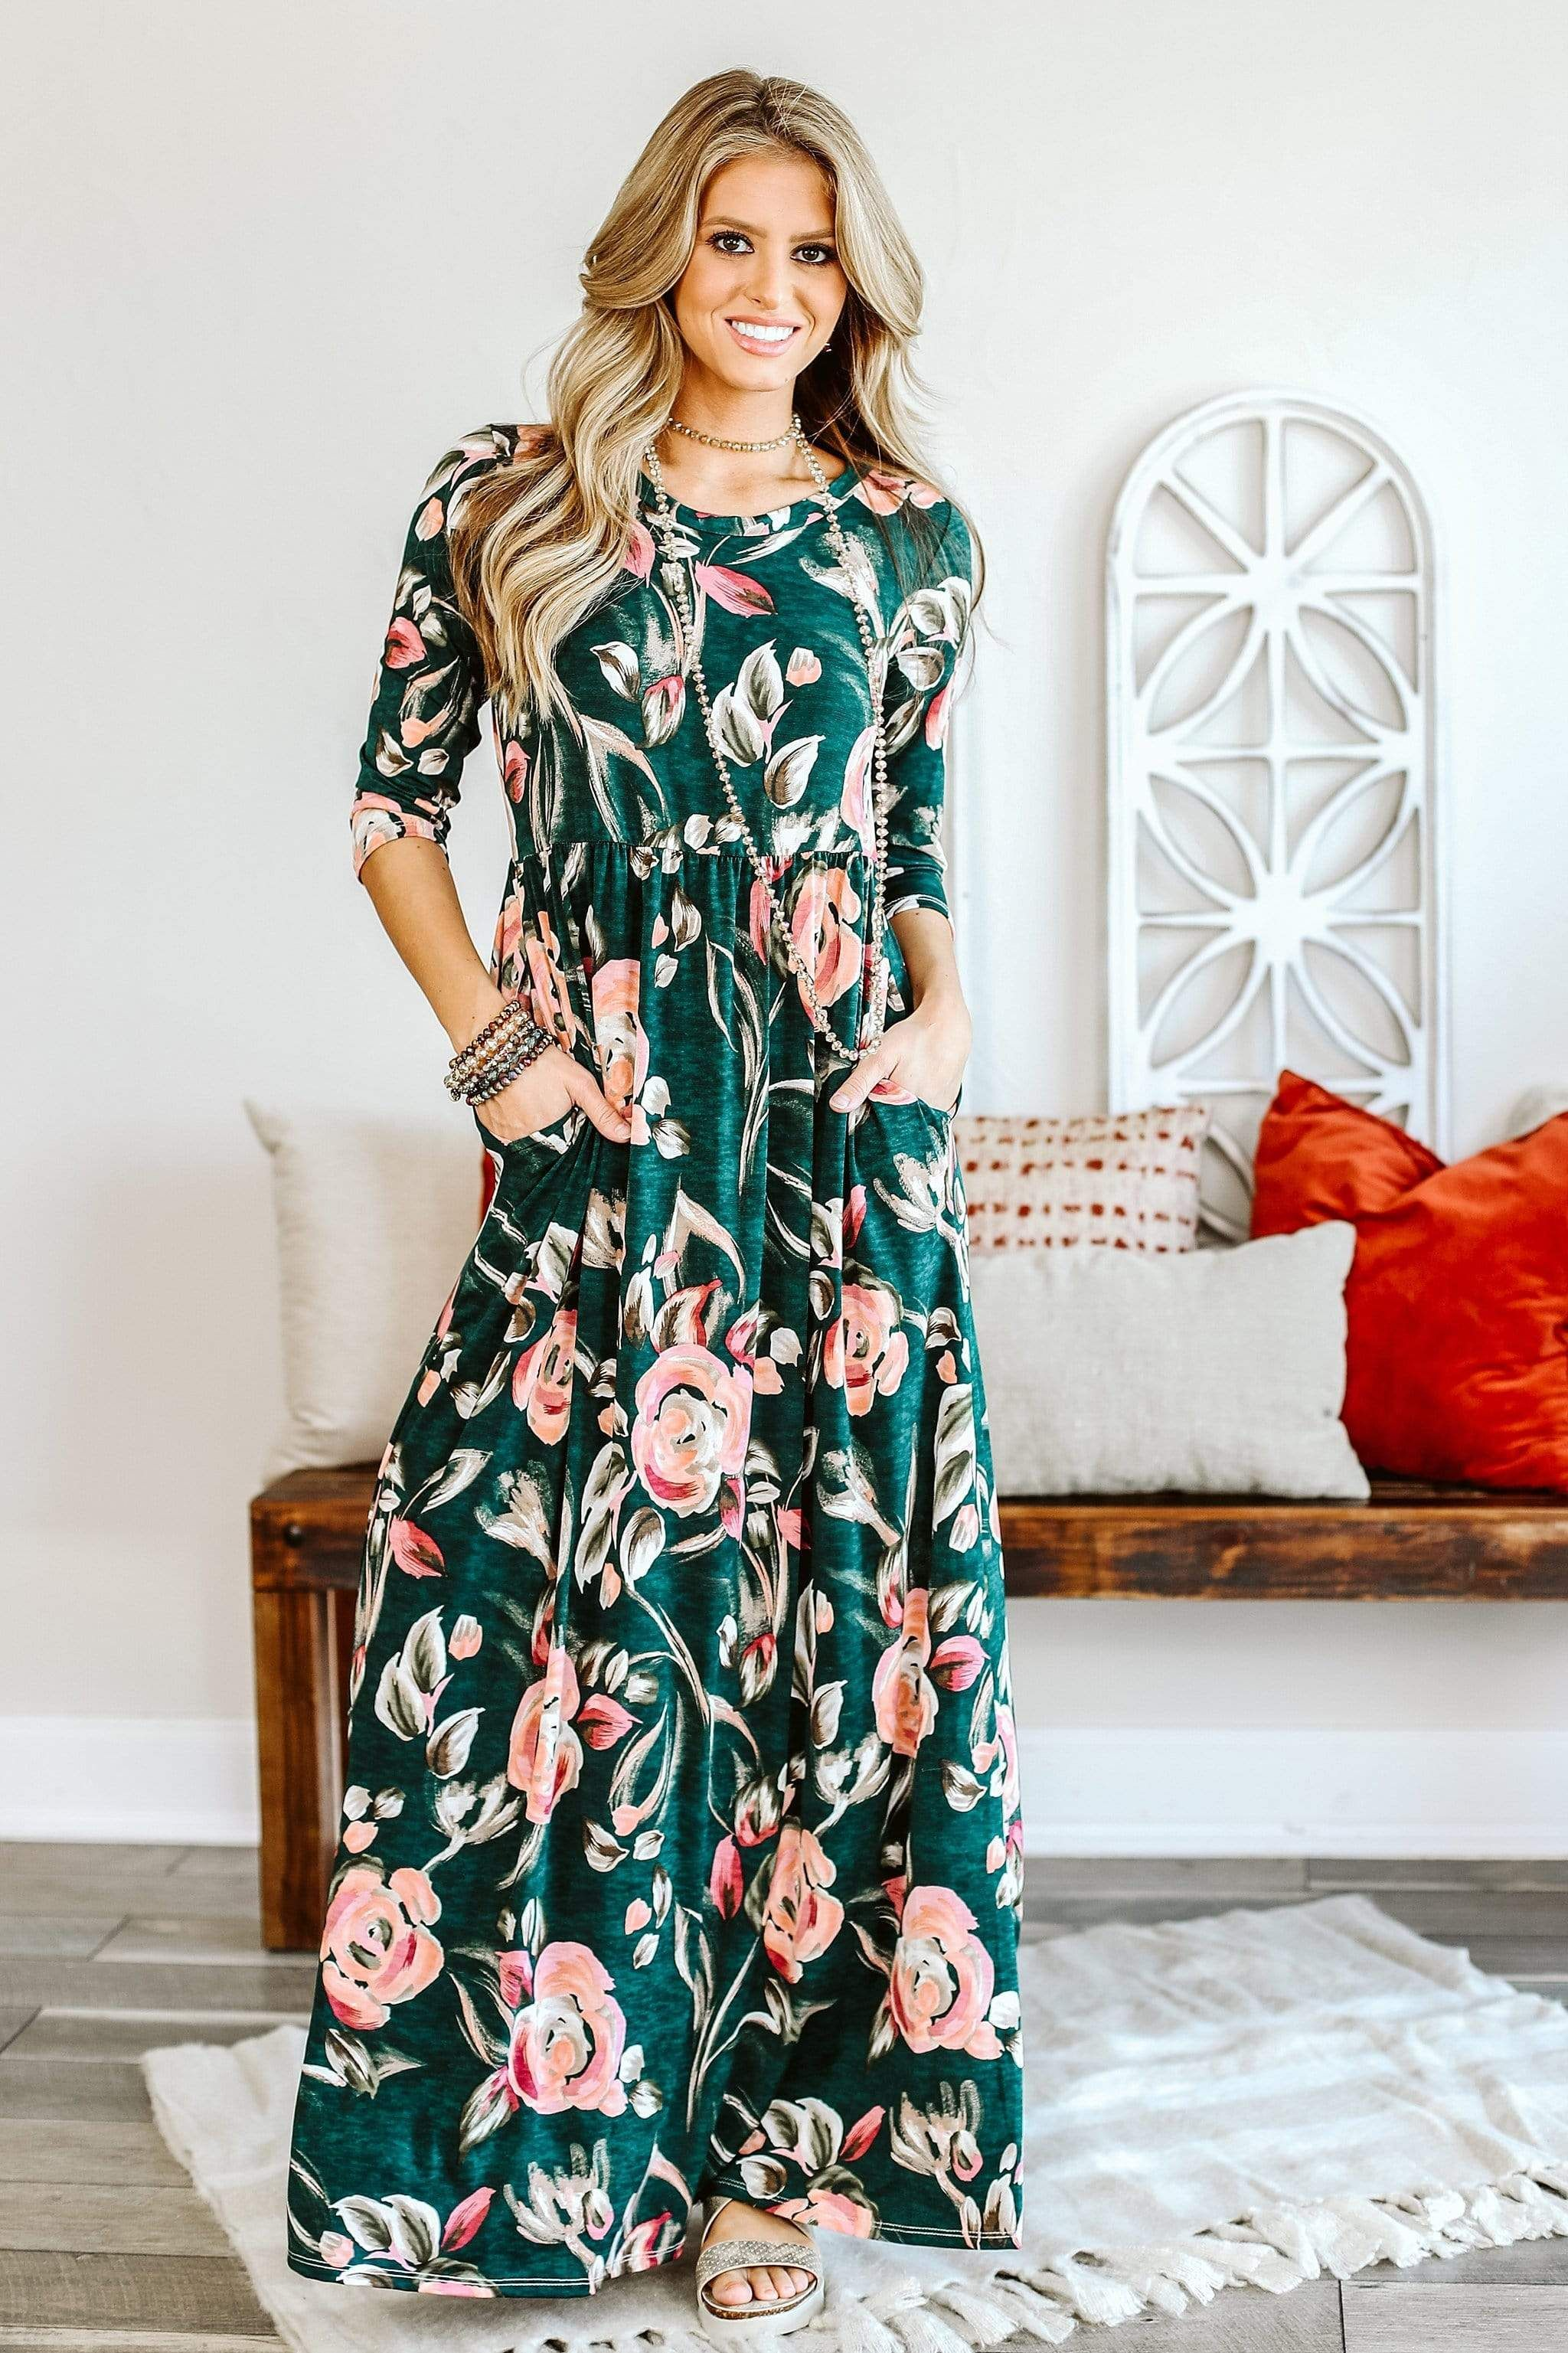 Fixated On Beauty Maxi Stylish 3 4 Sleeve Maxi In 2021 Best Maxi Dresses Pretty Maxi Dress Pretty Dresses Casual [ 3073 x 2048 Pixel ]